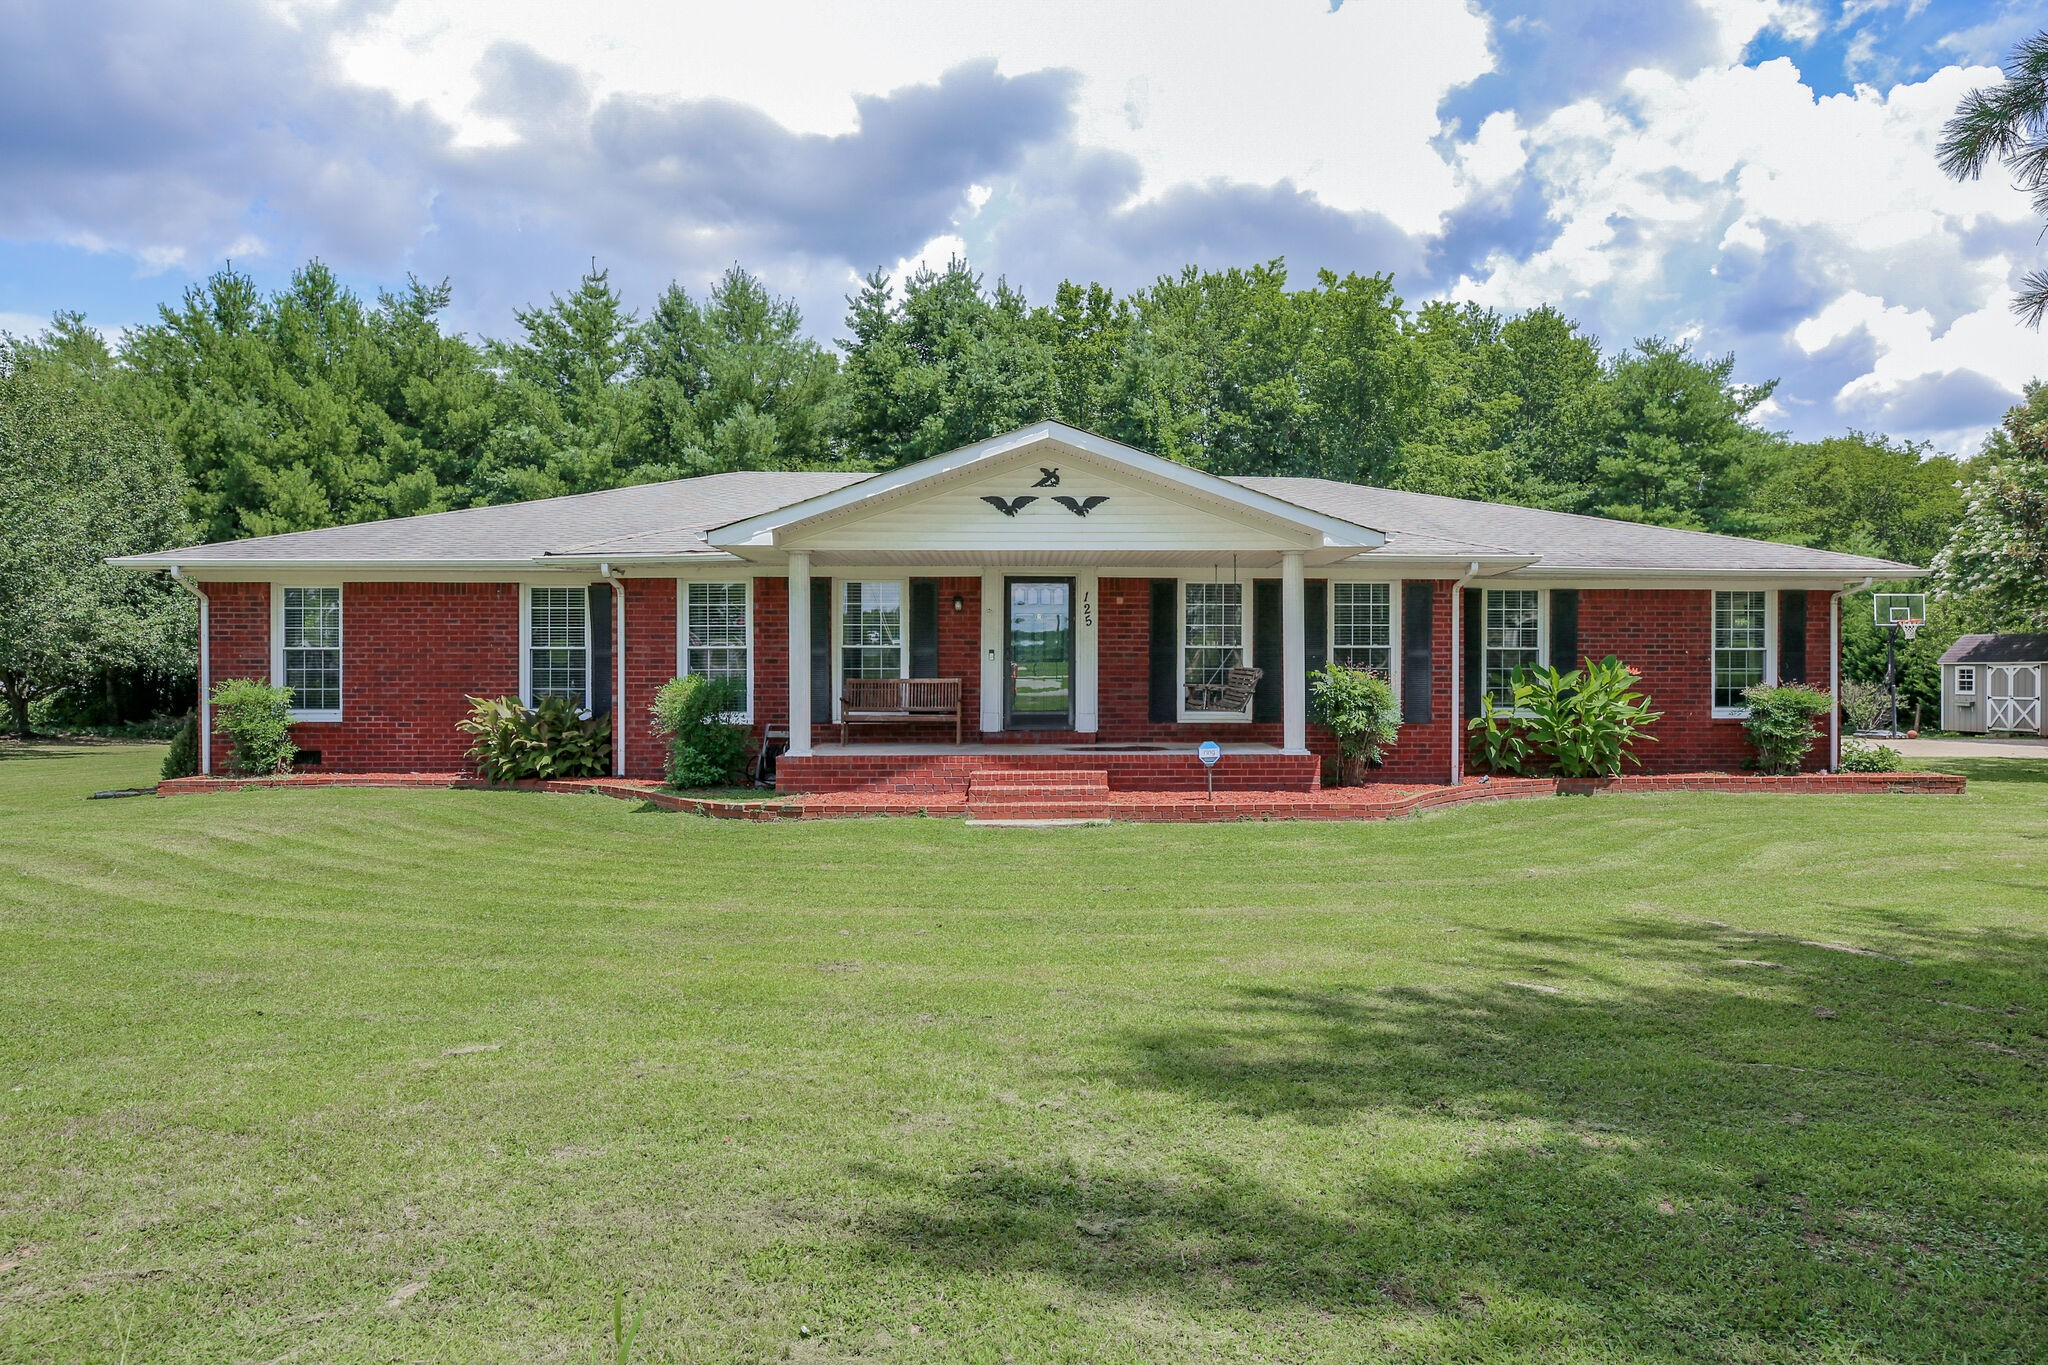 Can you imagine a one level home with a mother-in-law suite on a 1 acre lot? Yes mom can move in too!